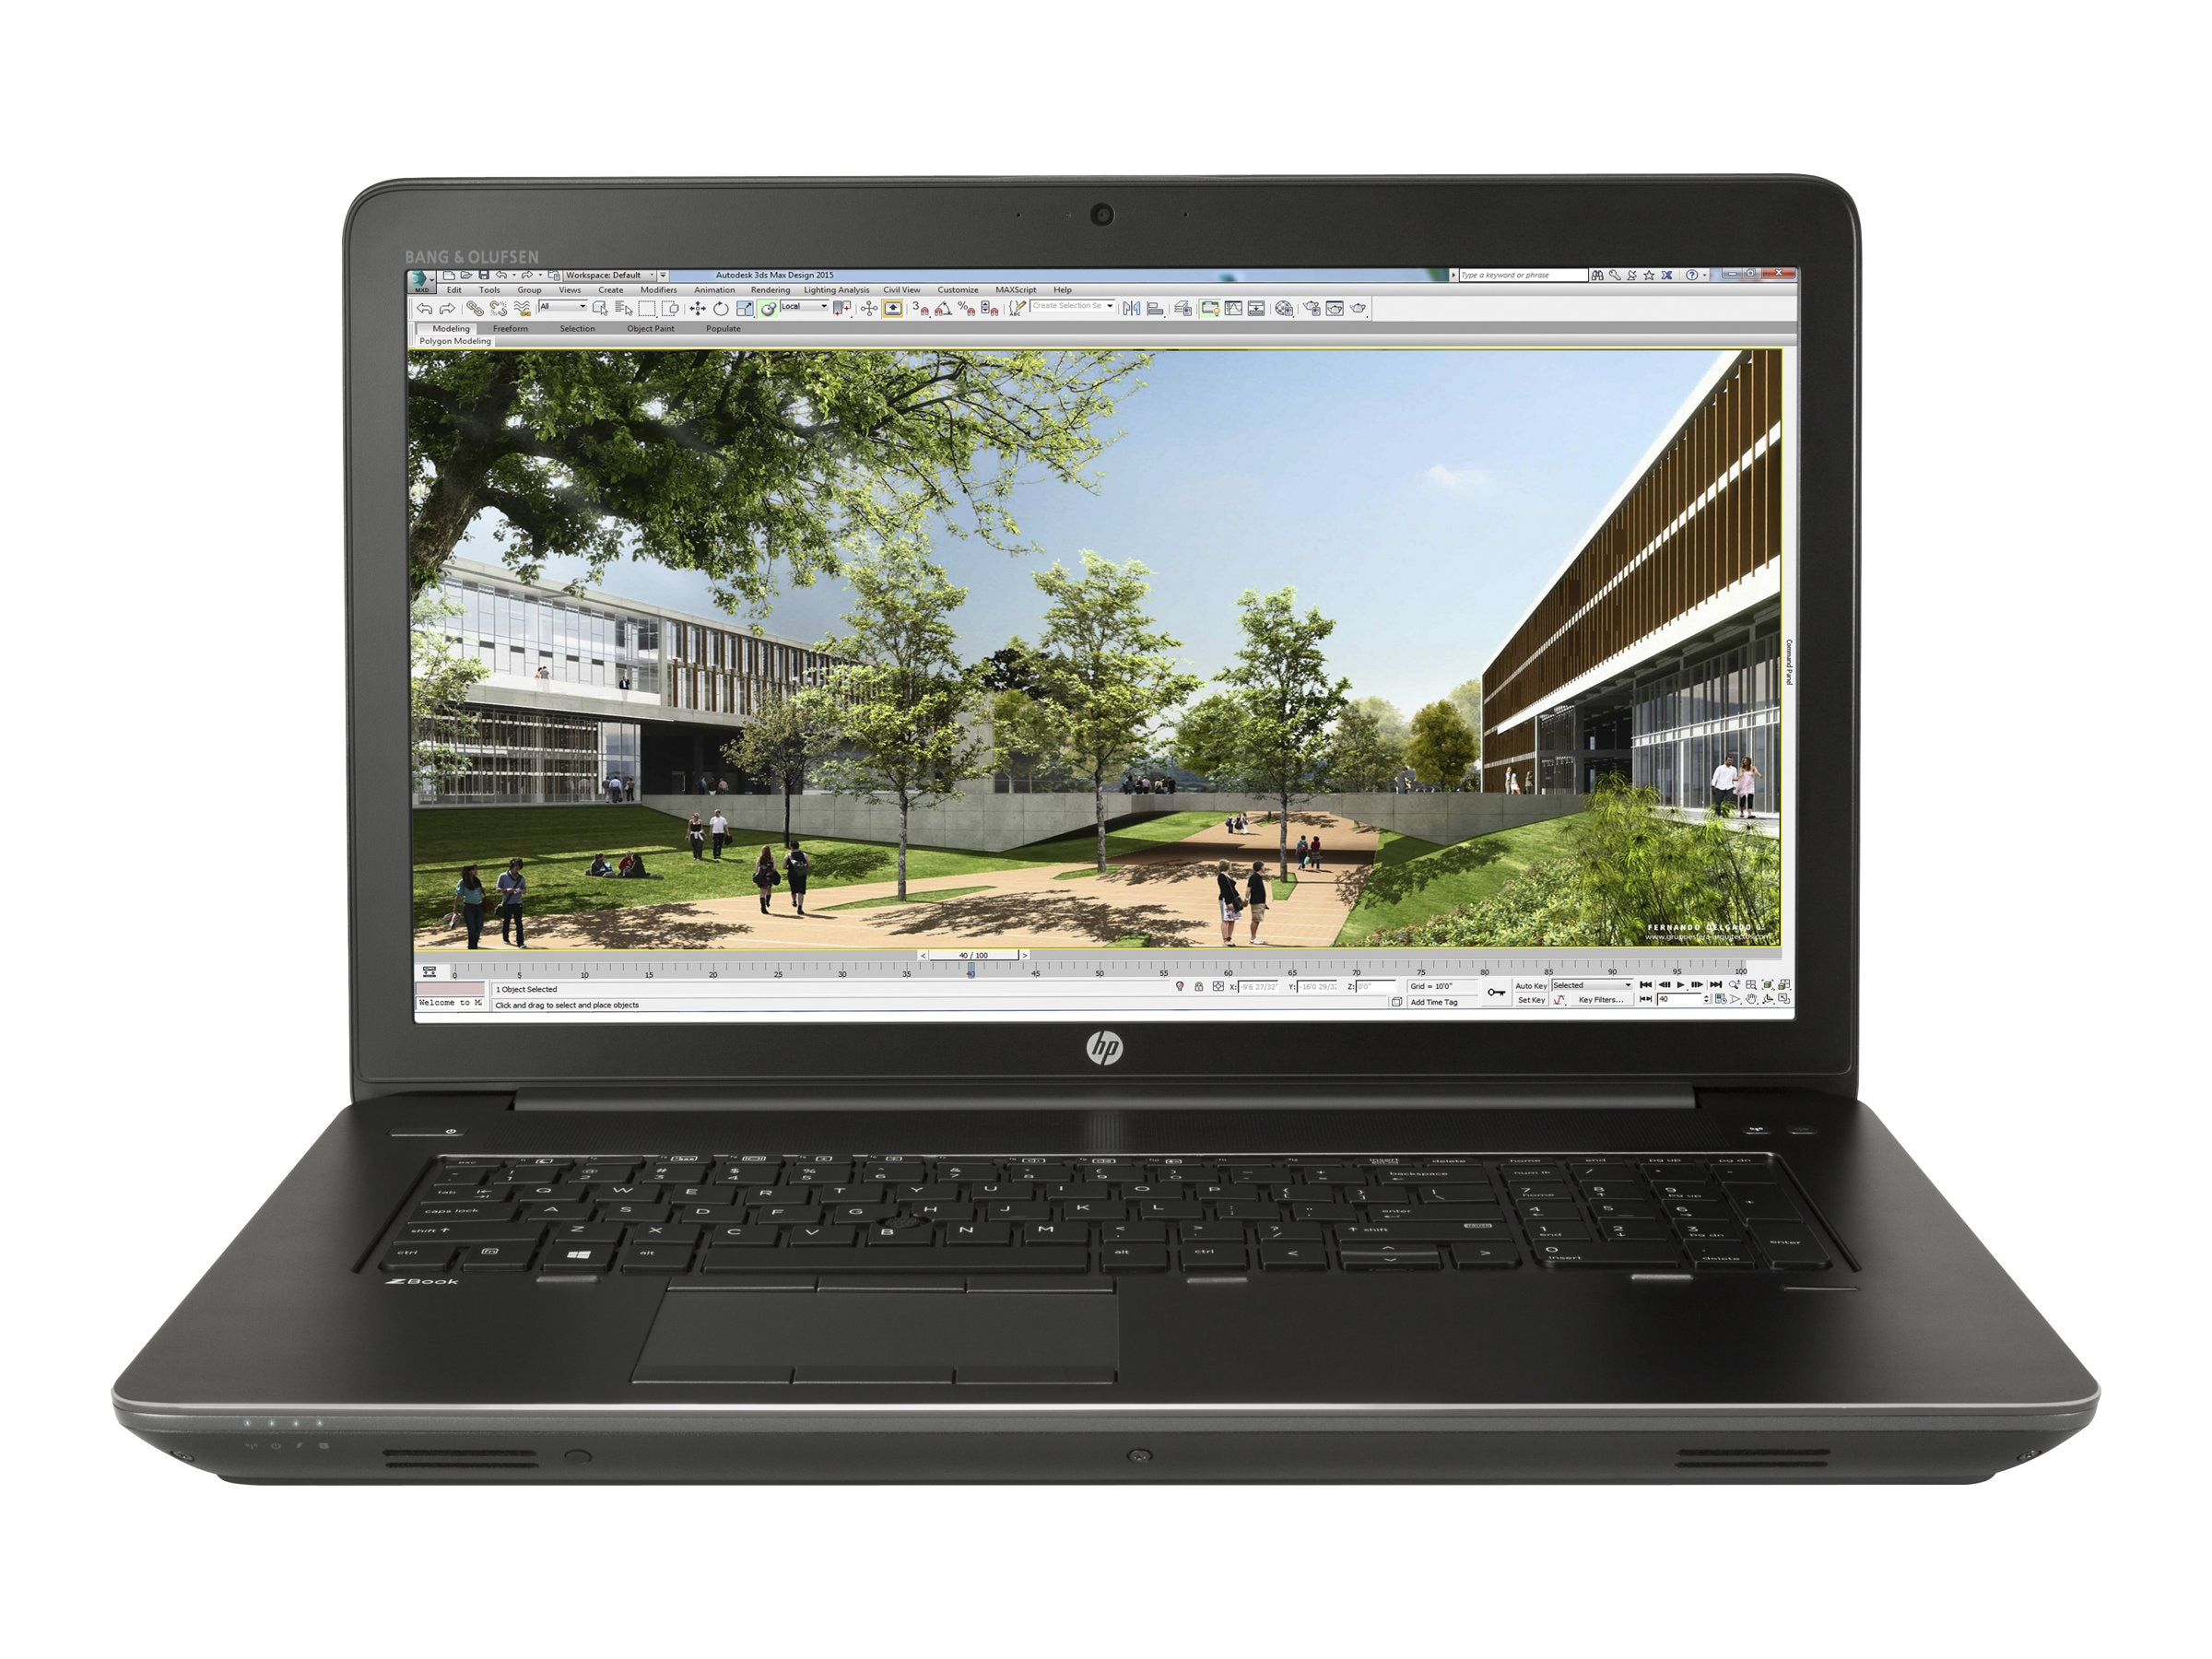 HP ZBook 17 G3 Core i7-6700HQ 2.6GHz 16GB 512GB PCIe ac GNIC BT FR WC 6C M3000M 17.3 FHD MT W10P64, X9V50UT#ABA